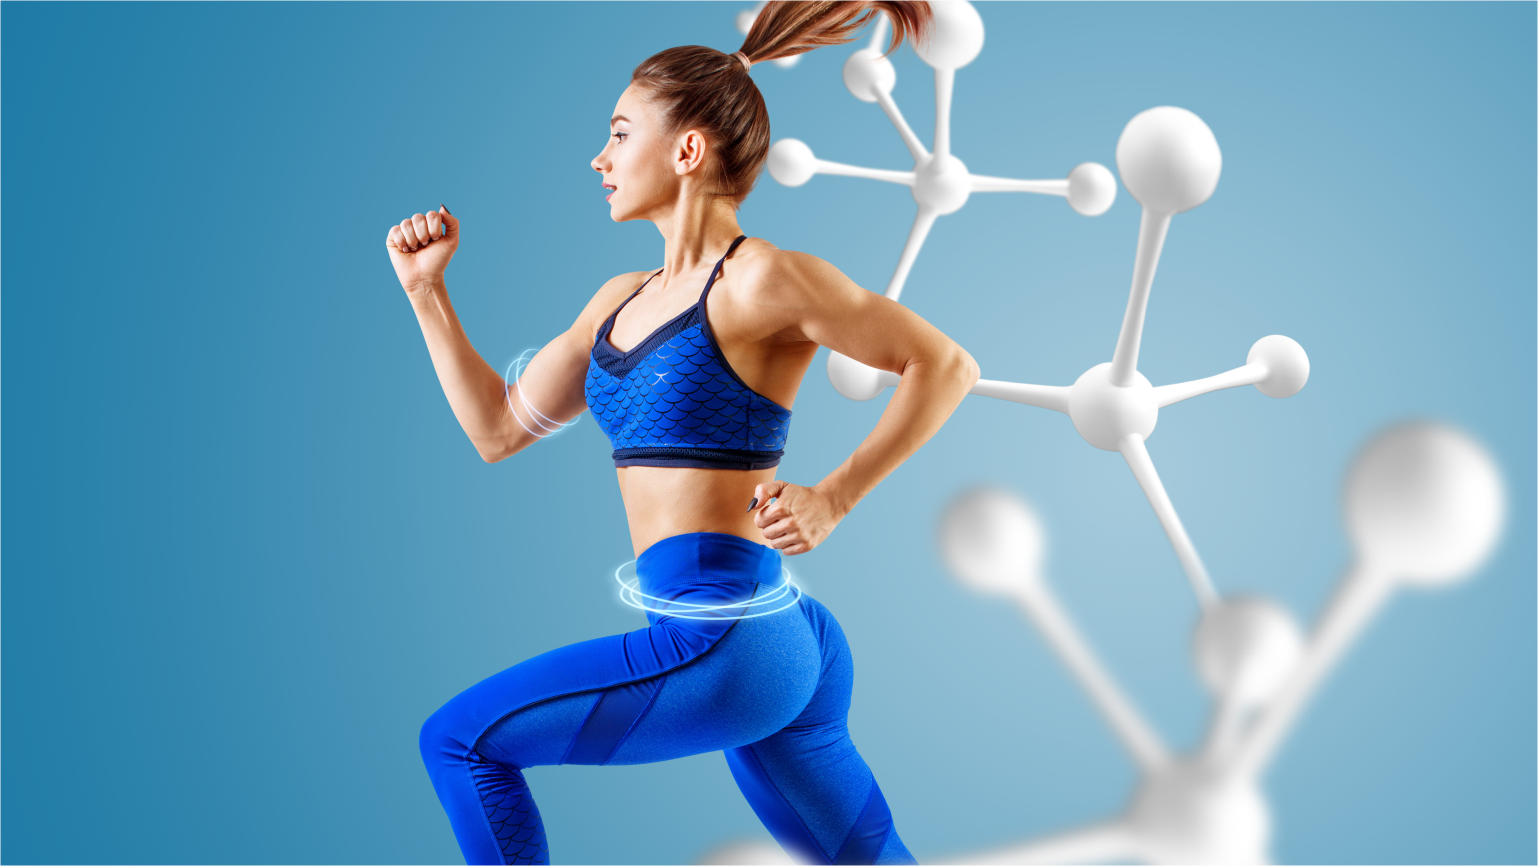 Do Keto Diets Increase or Decrease Your Metabolic Rate